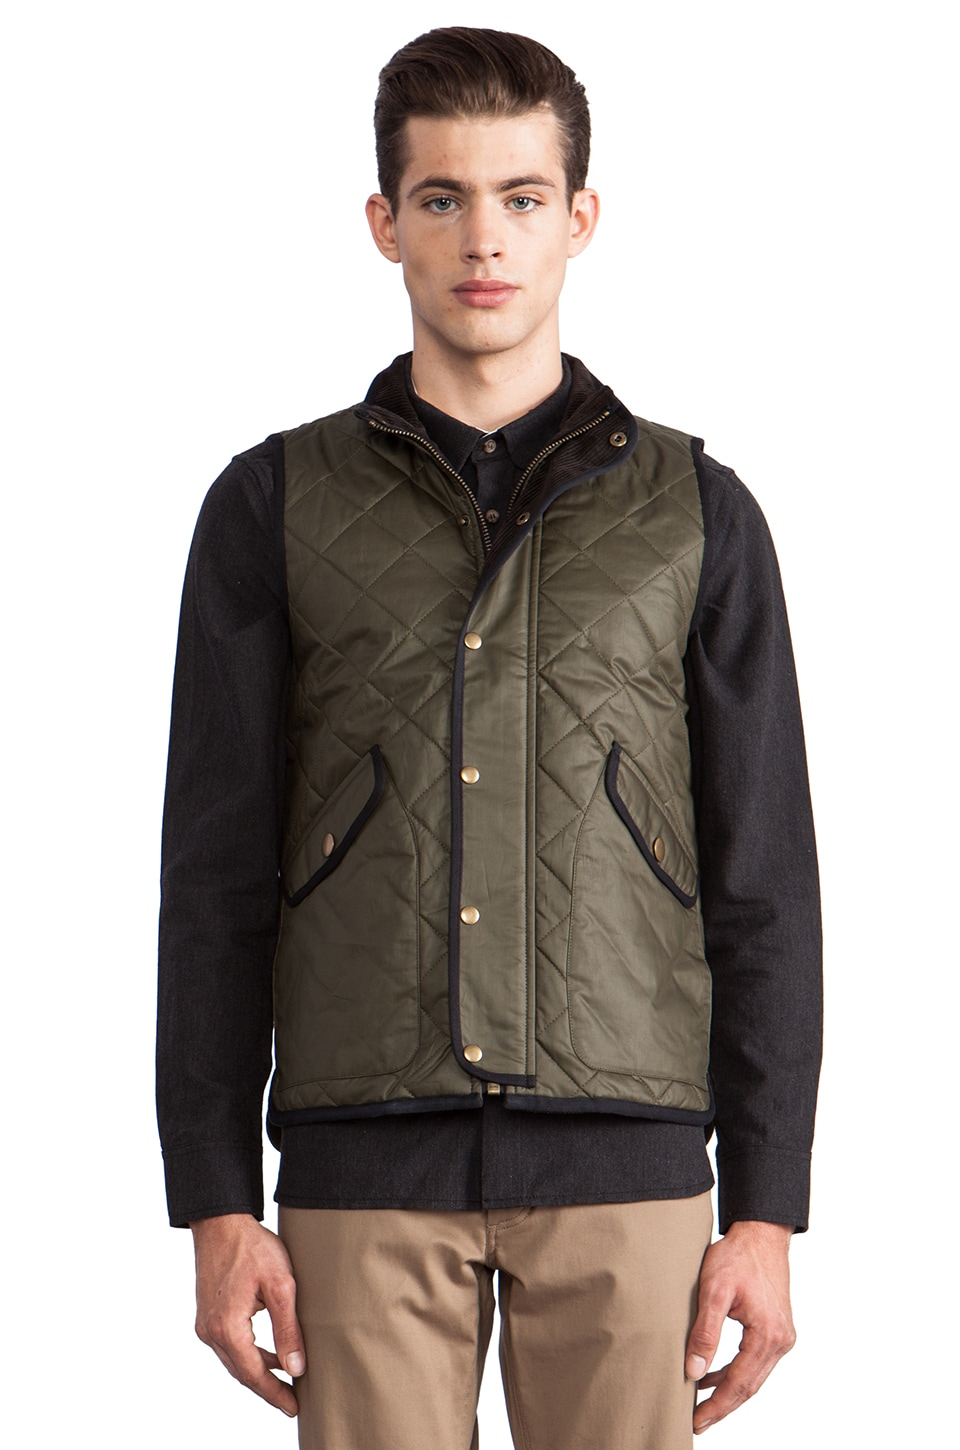 TOVAR Andrew Quilted Vest in Army